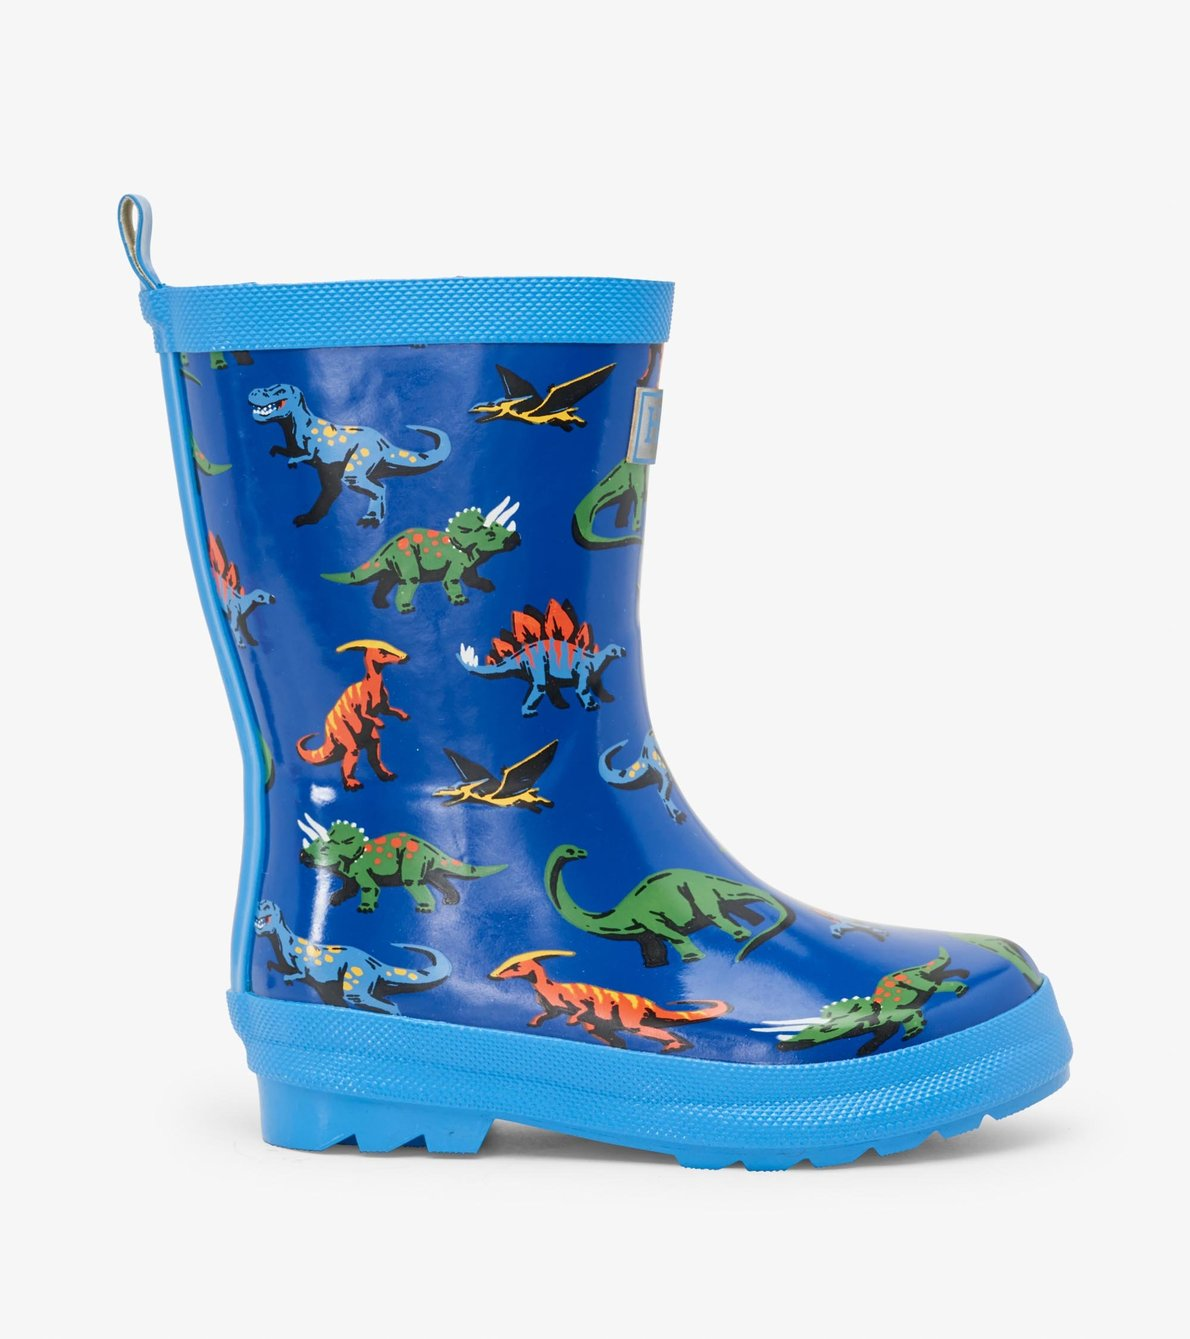 View larger image of Friendly Dinos Shiny Rain Boots